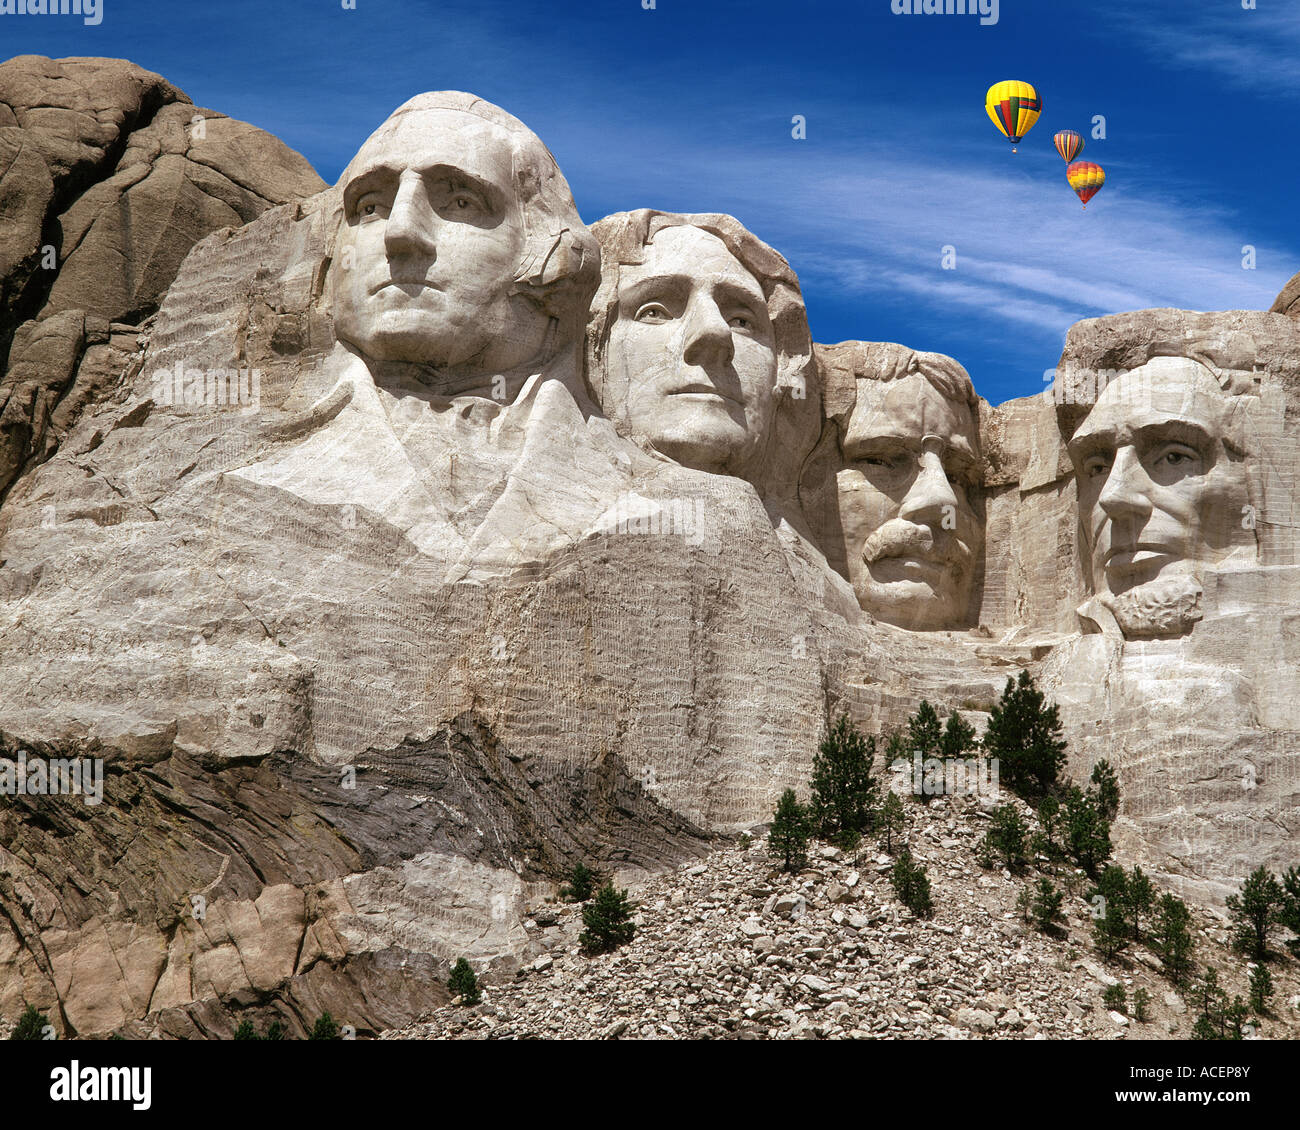 Estados Unidos - South Dakota: El Monumento Nacional Monte Rushmore Imagen De Stock